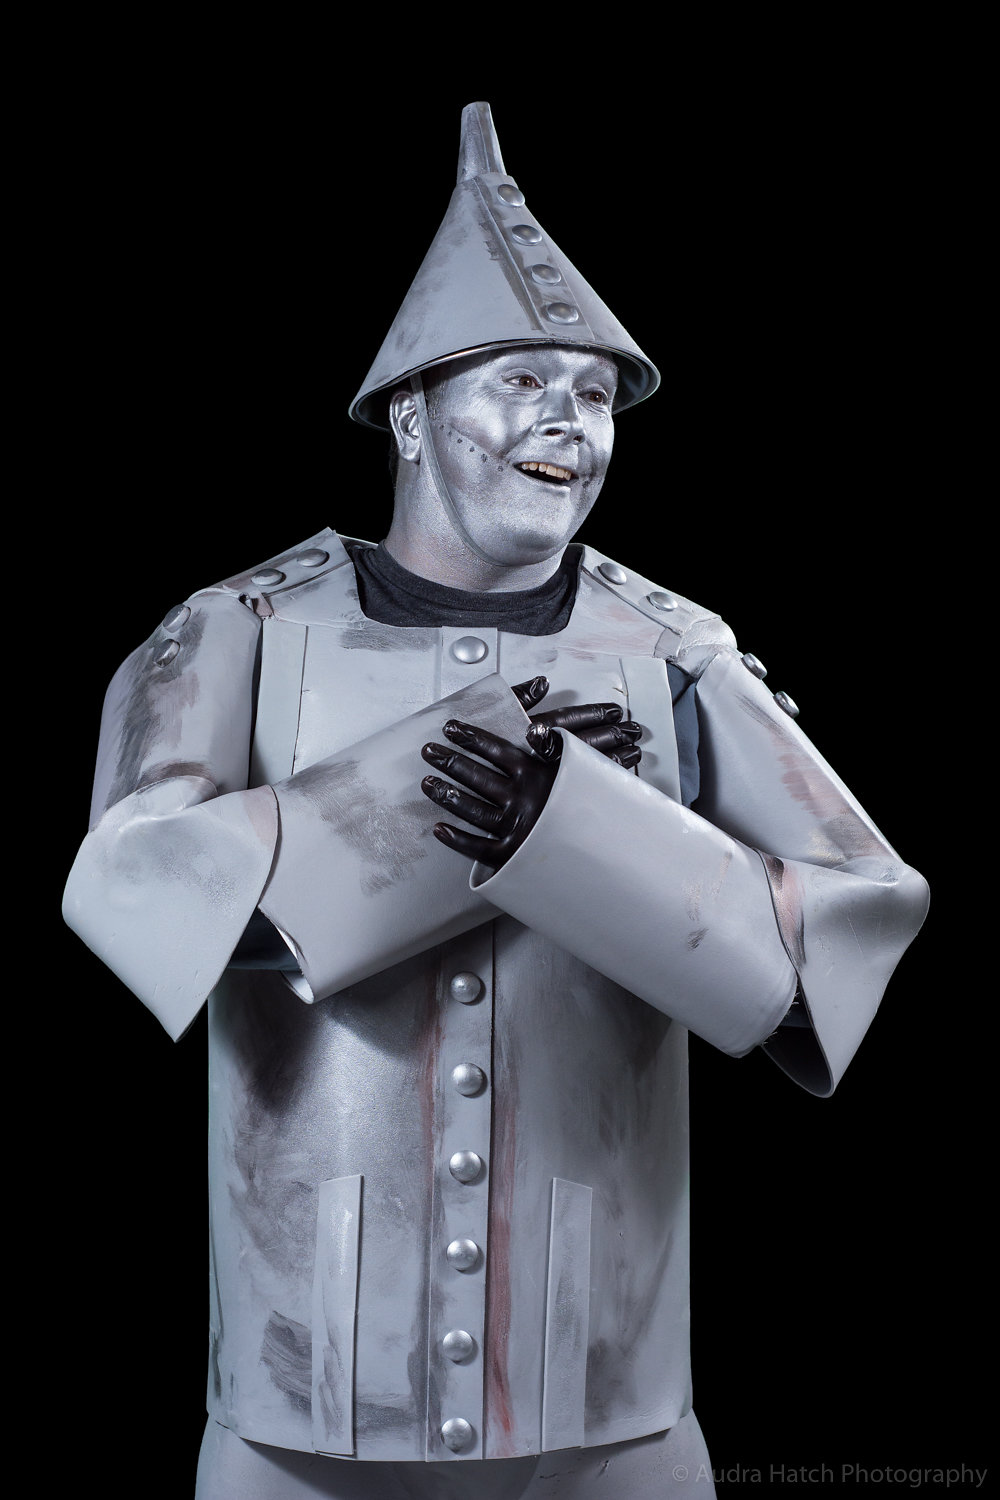 Brian McAloon as Tin Man in City Theater's production of